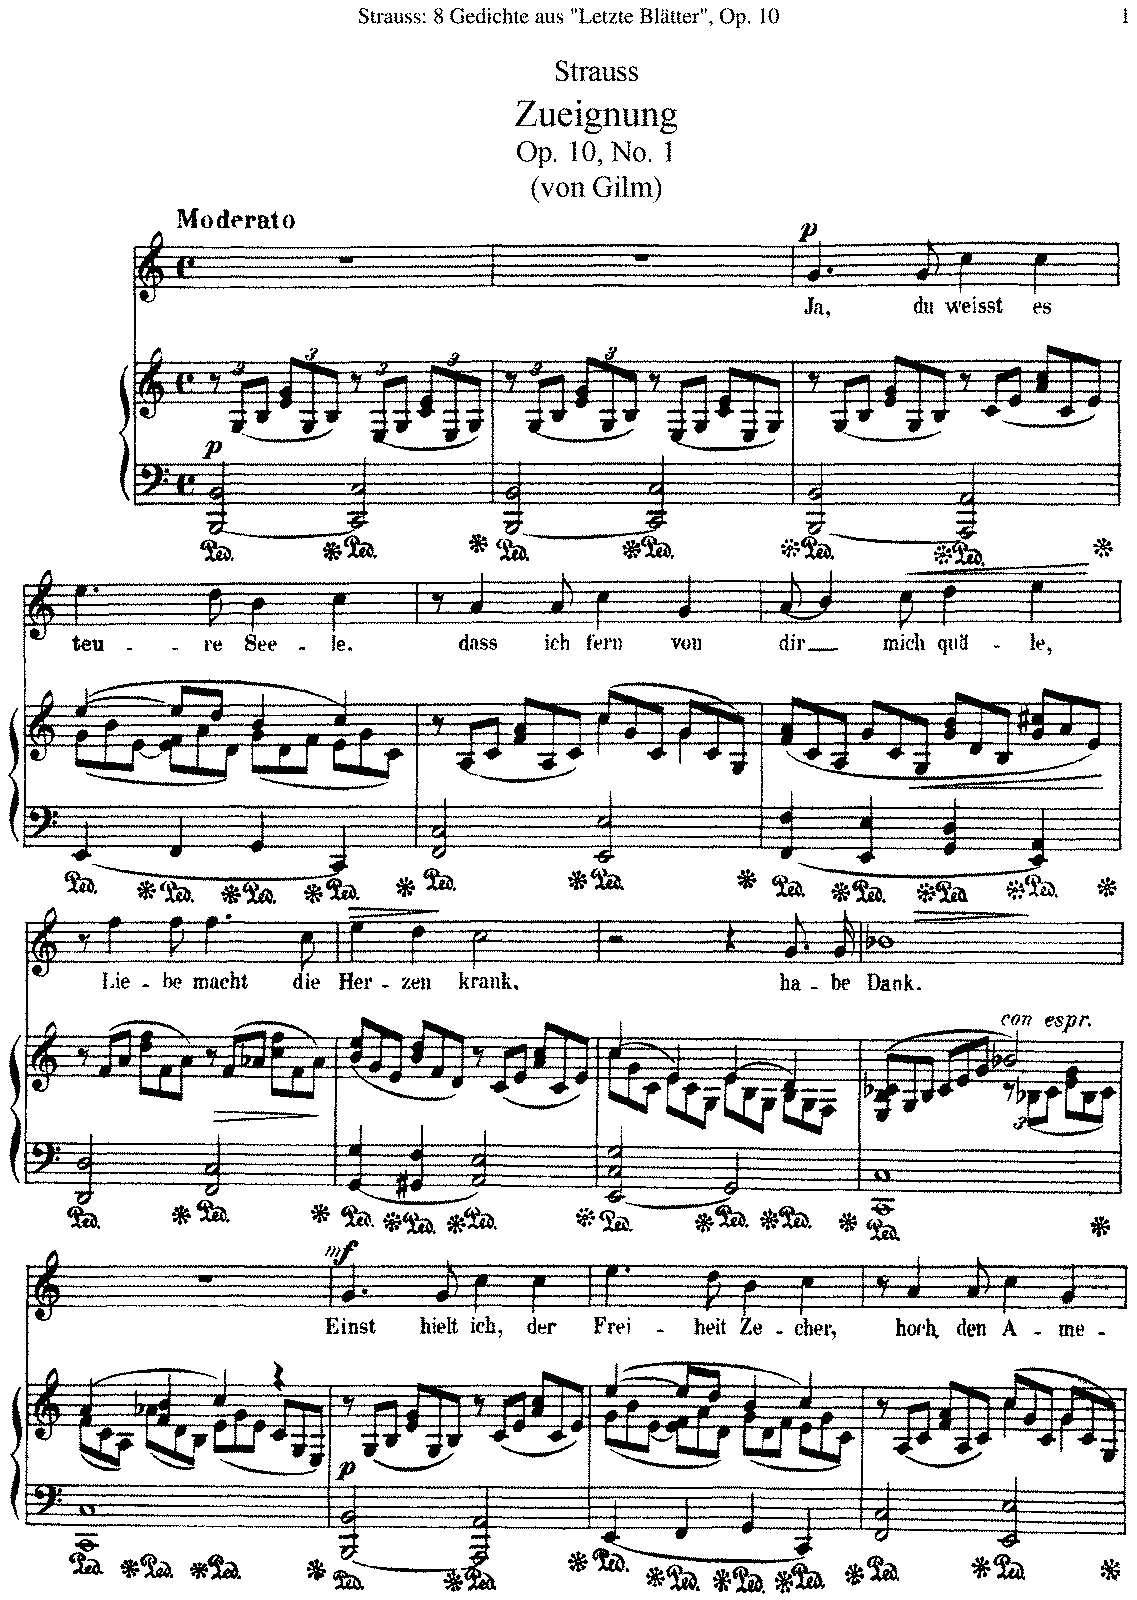 PMLP61447-Strauss--Op 10, 8 Songs from Letzte Blätter.pdf